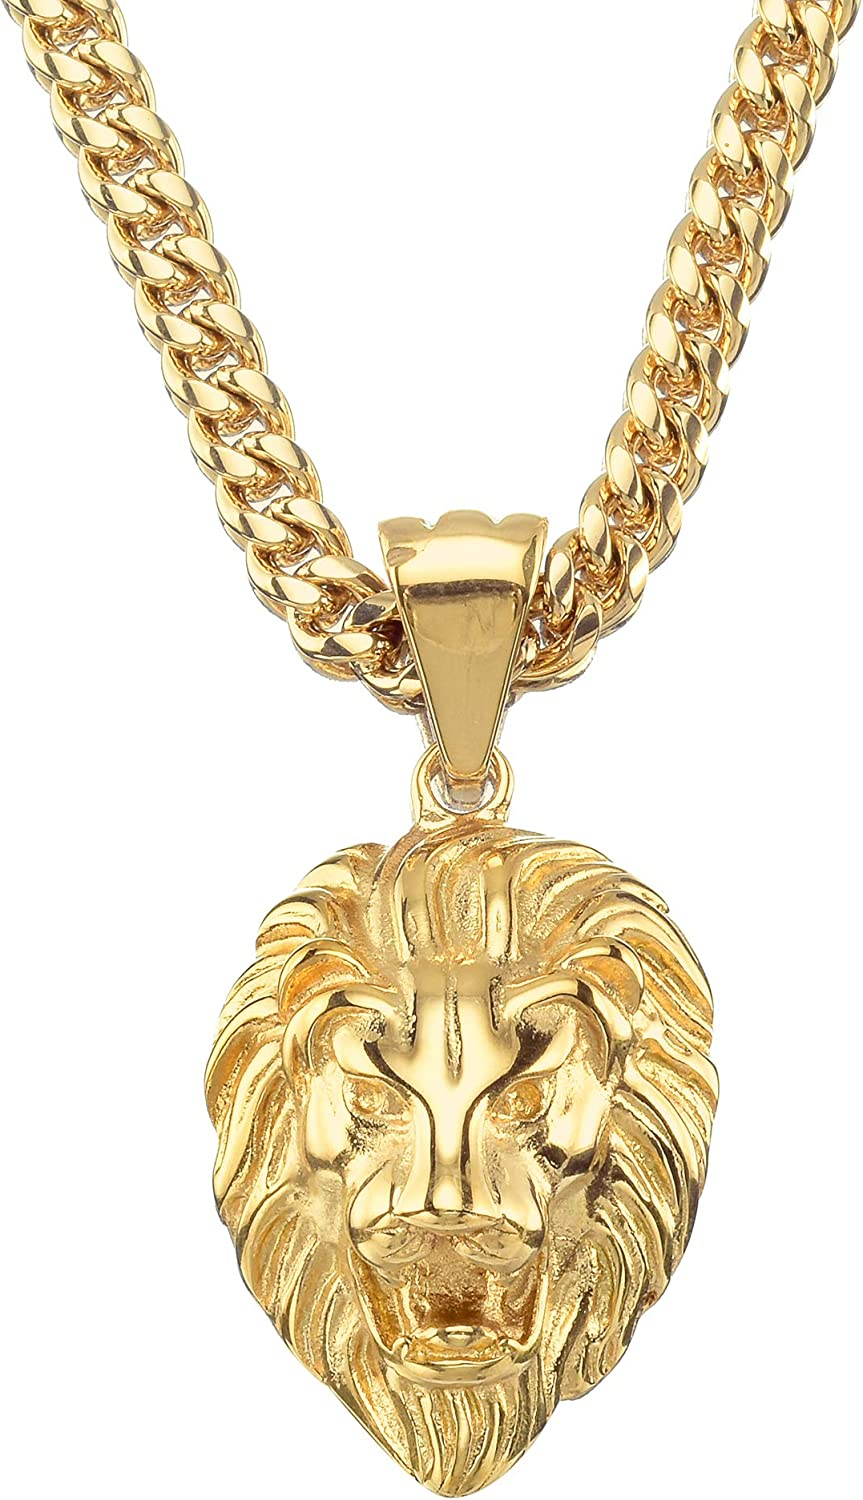 W/W Lifetime Lion Necklace 18K Gold Stainless Steel Head Pendant Necklace Mens Hip Hop Rapper With 16MM Miami Stainless Steel Cuban Link Chain 24inches